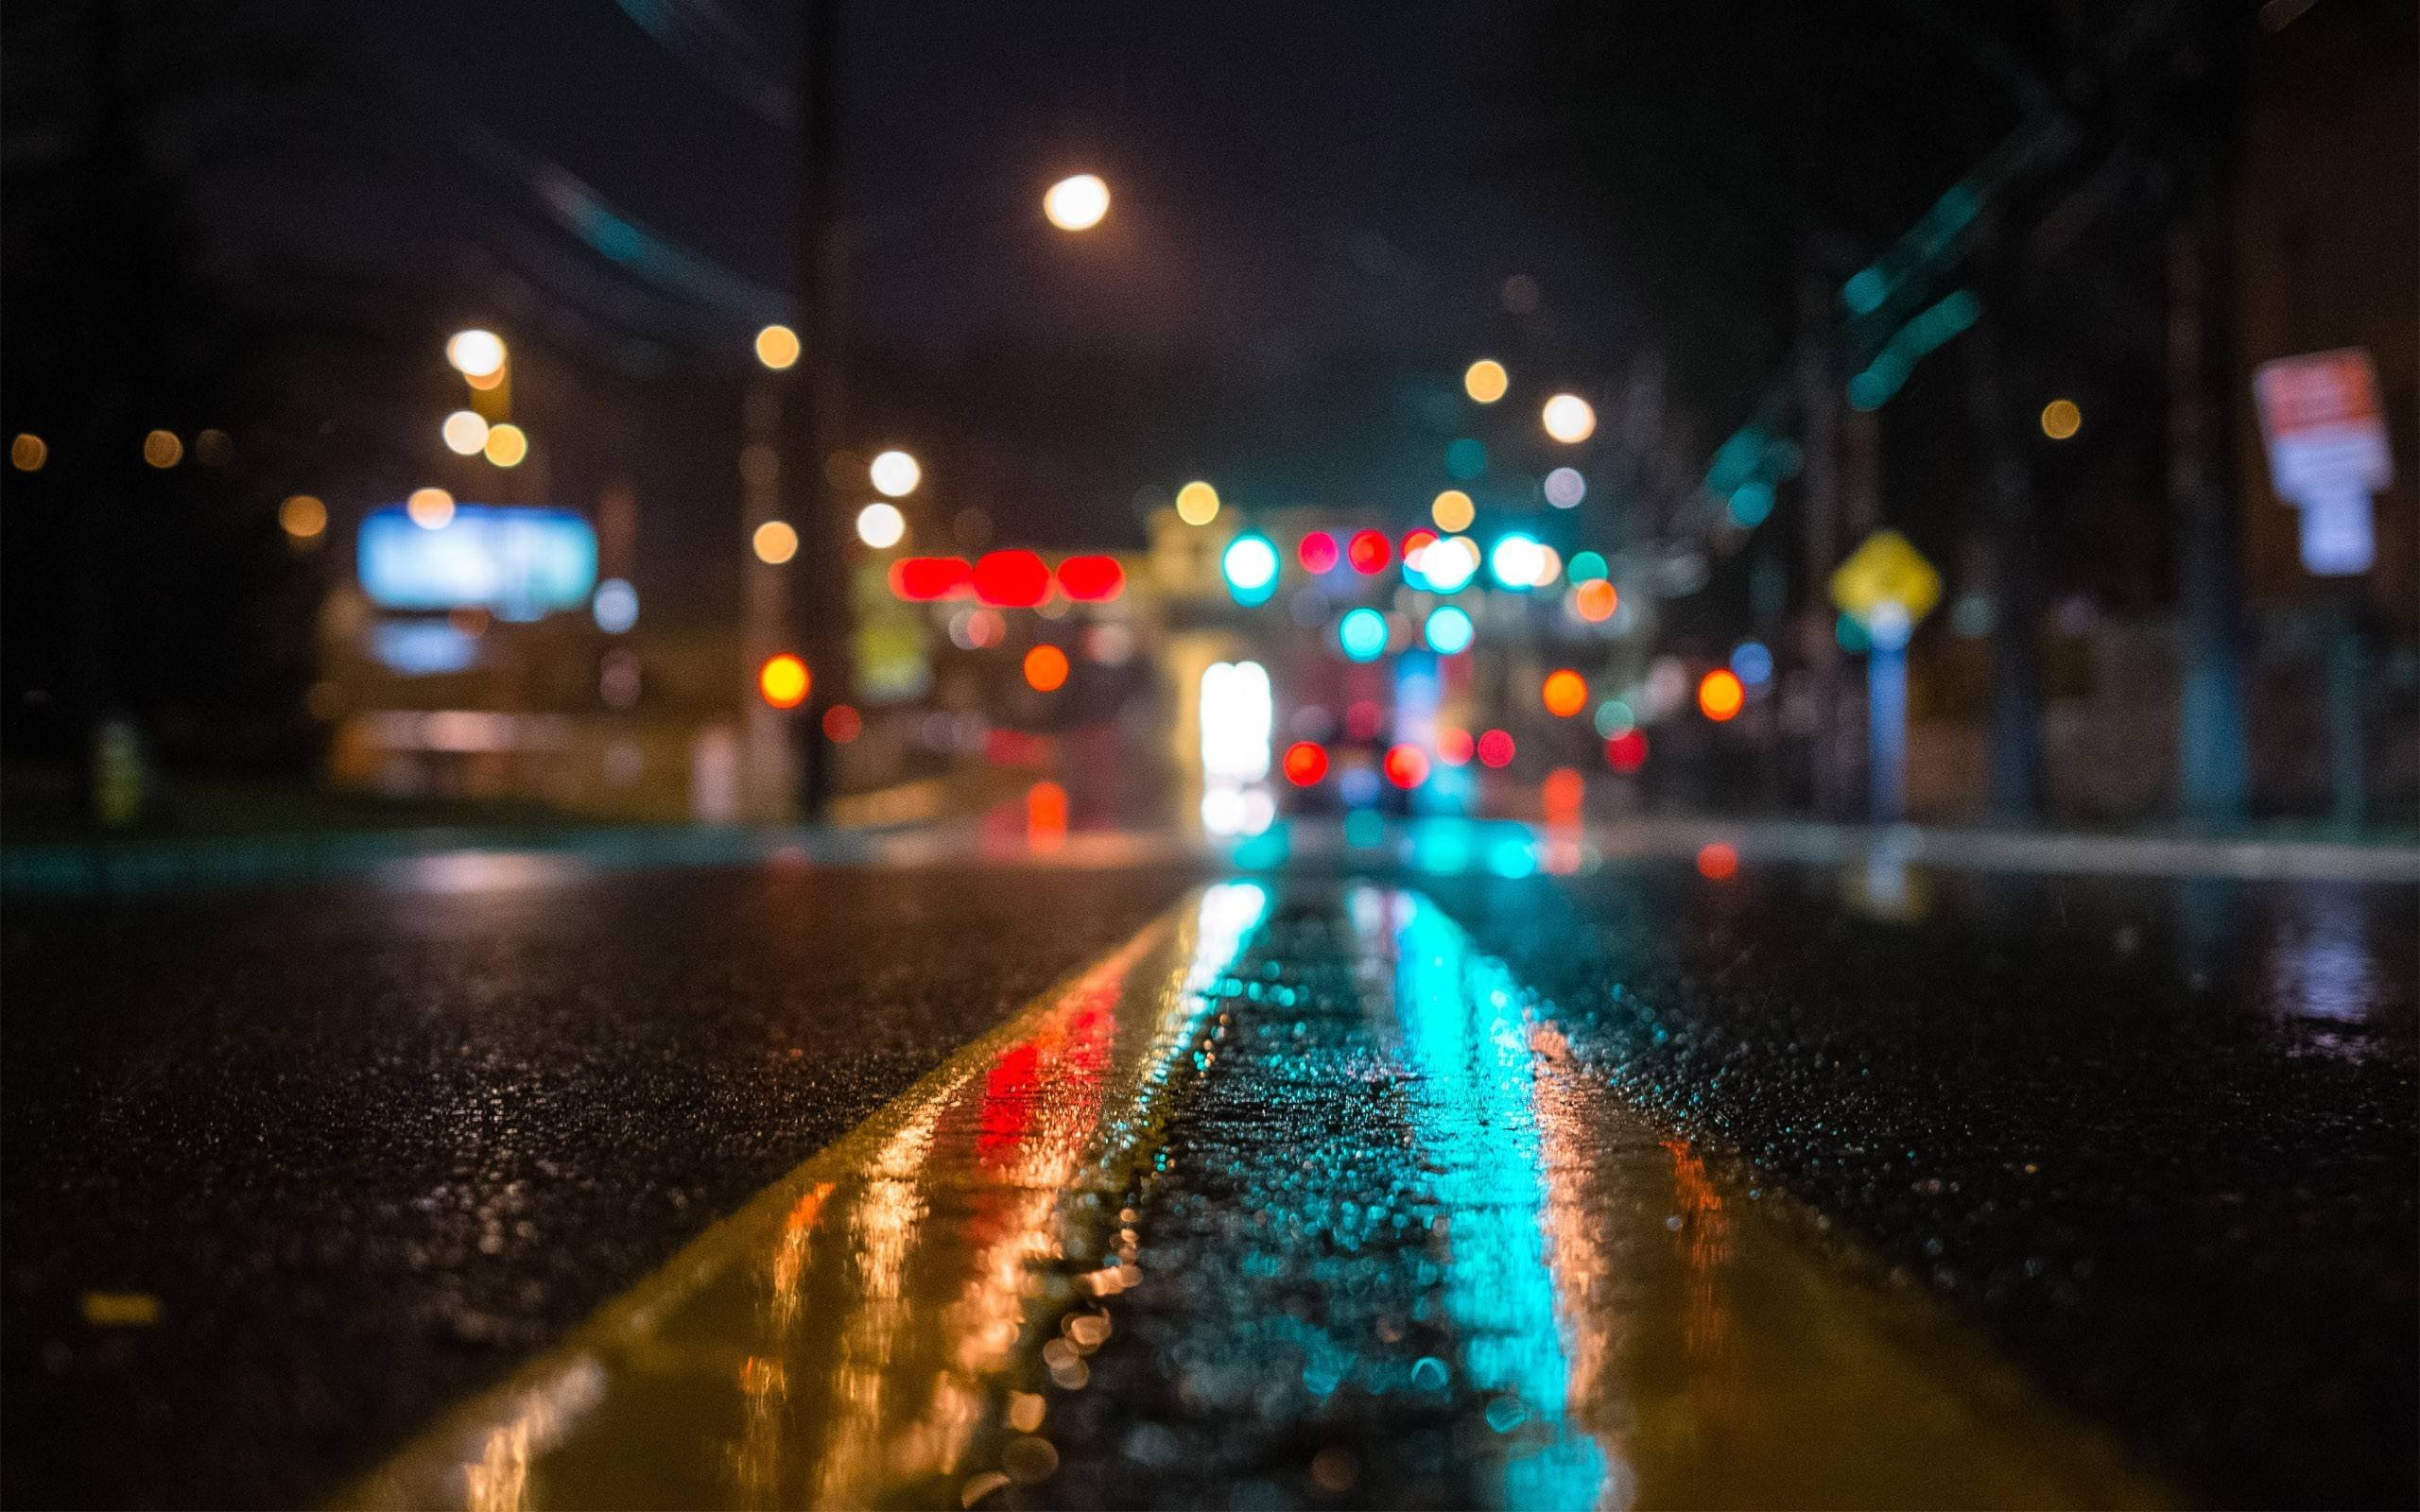 Street at Night wallpaper